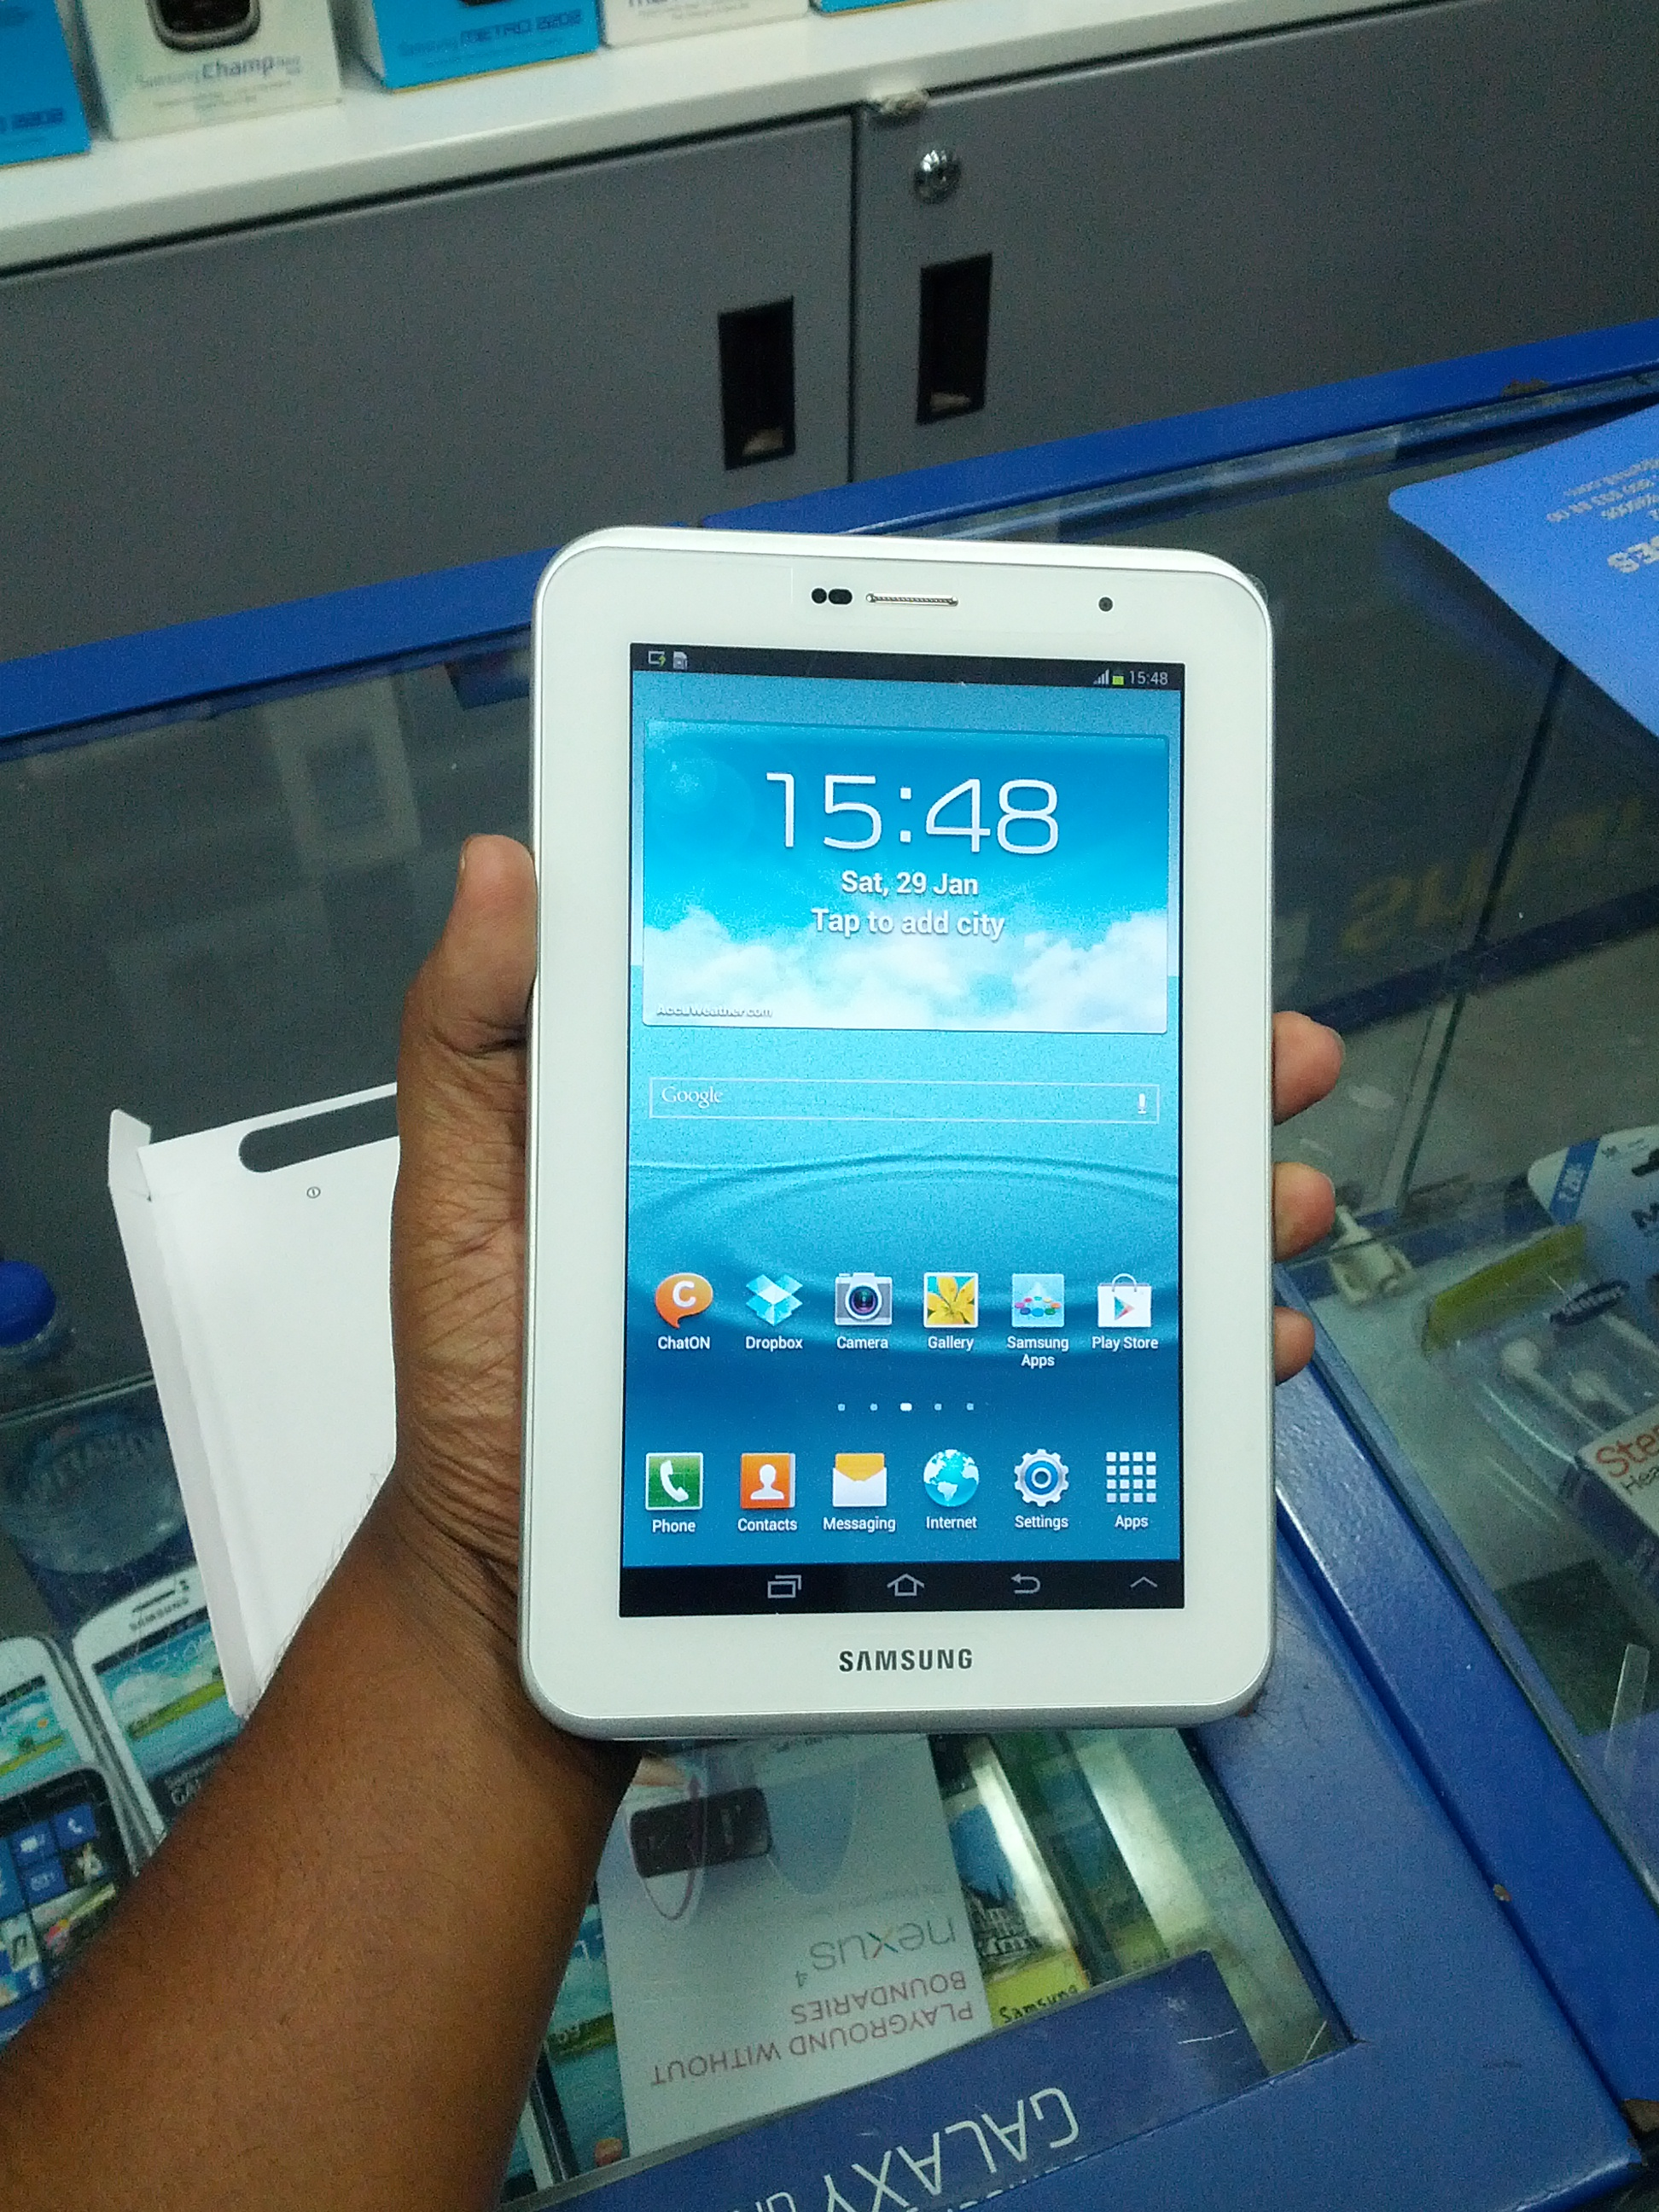 File:Samsung galaxy tab 2.jpeg